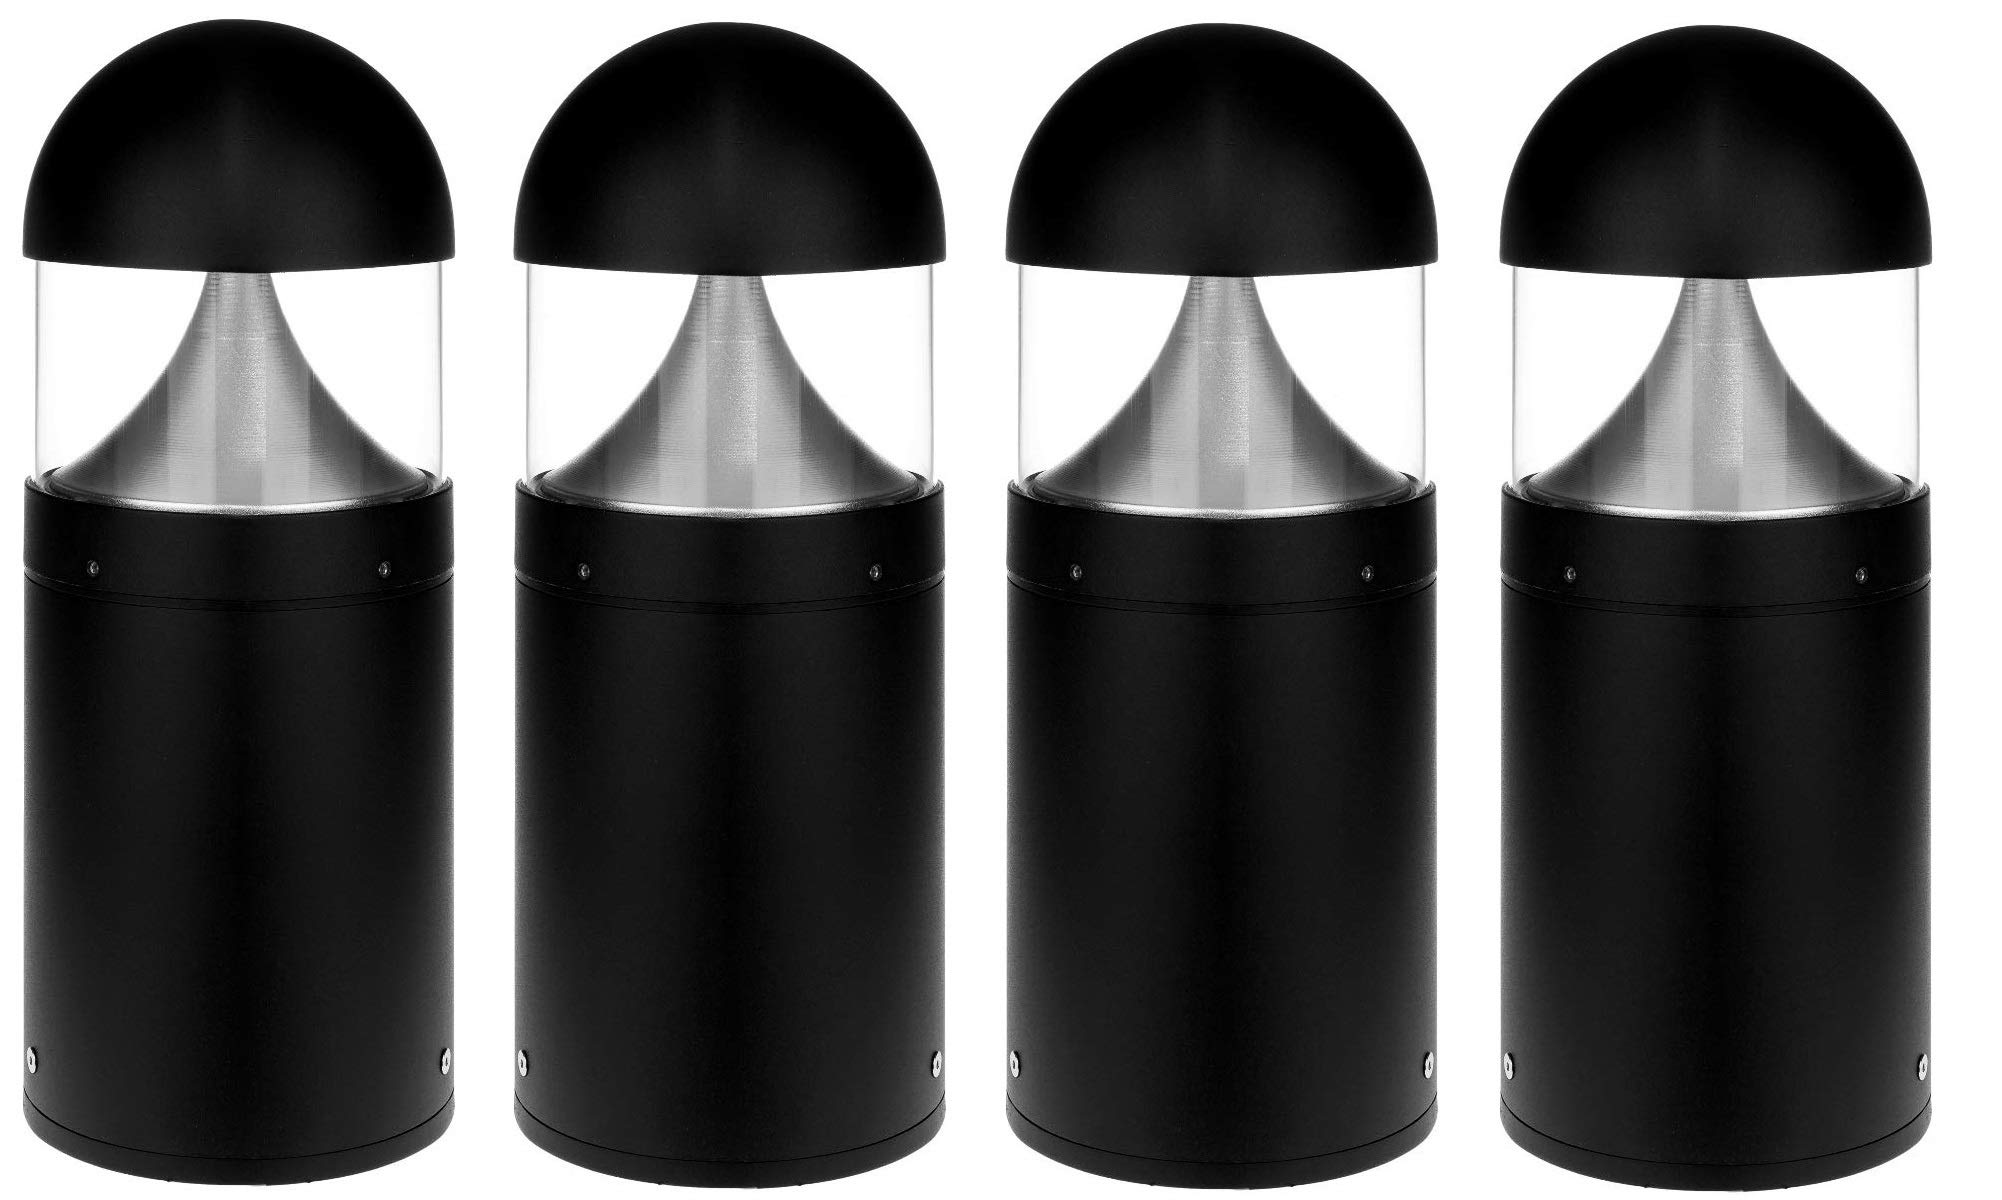 LED Bollard Landscape Lights 16'' 10W 3000K 120-277V Commercial/Residential Lighting Fixture for Garden, Pathway, Driveway. Rated IP65 Suitable for Wet Locations, ETL Listed (4 Pack)